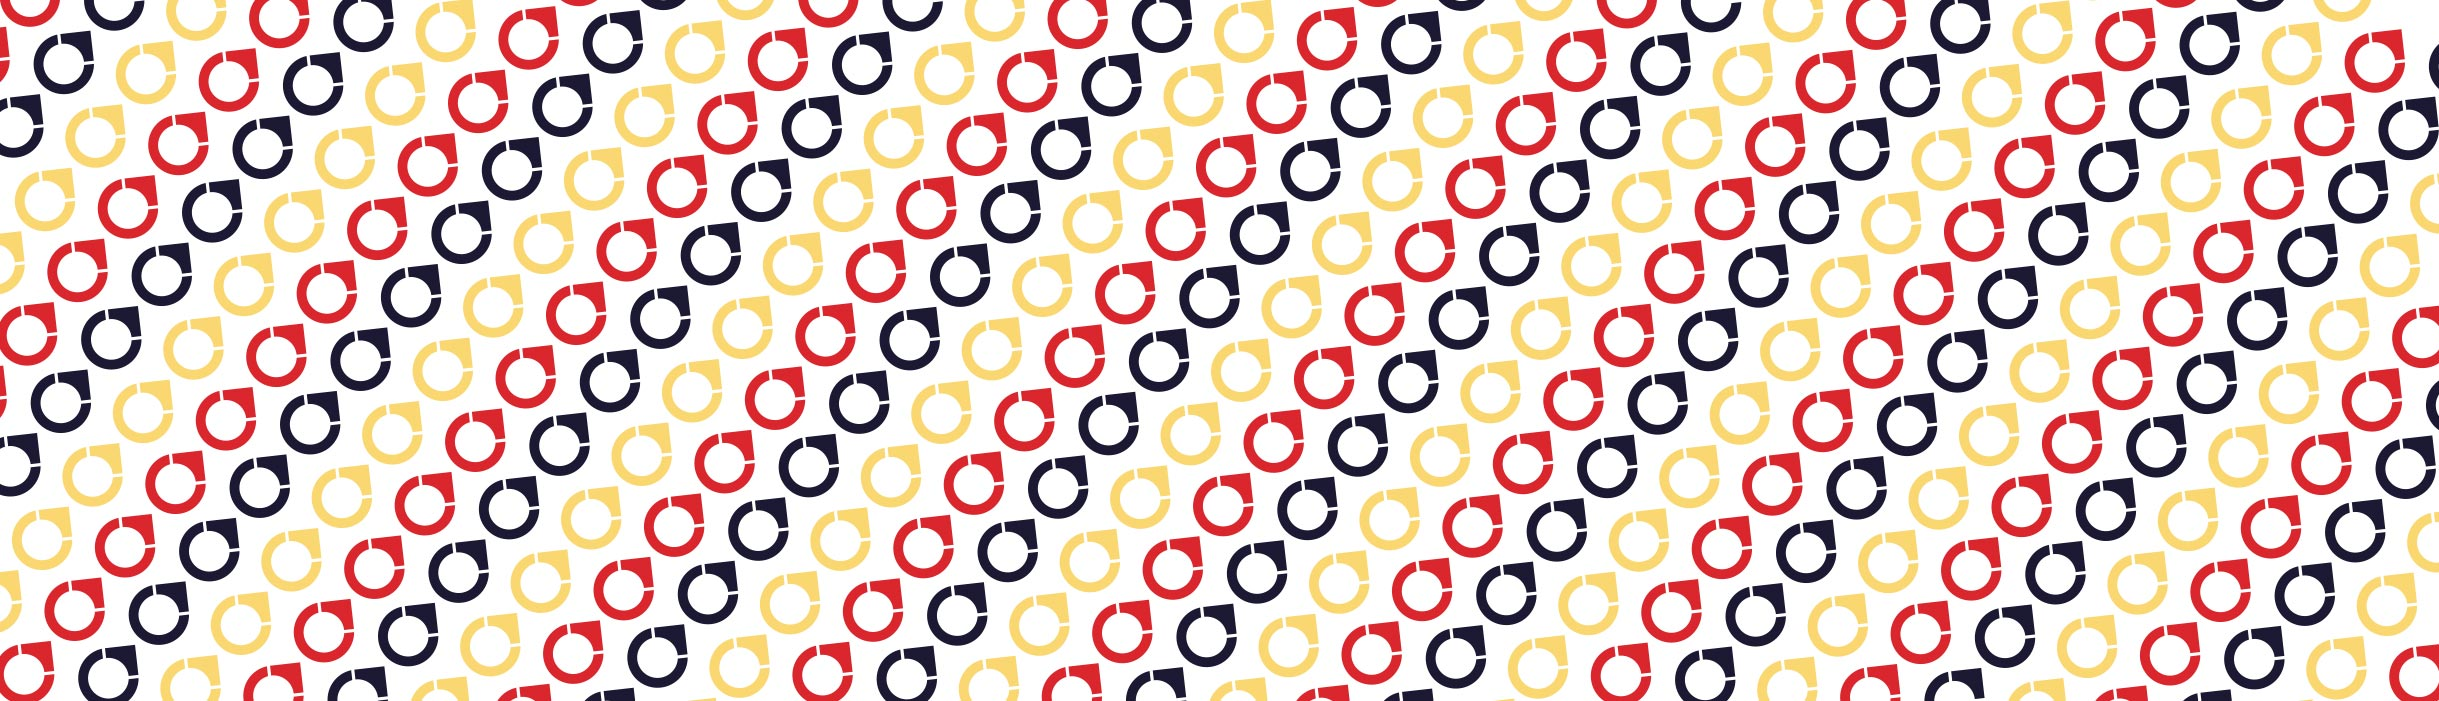 graphic_pattern_4_f